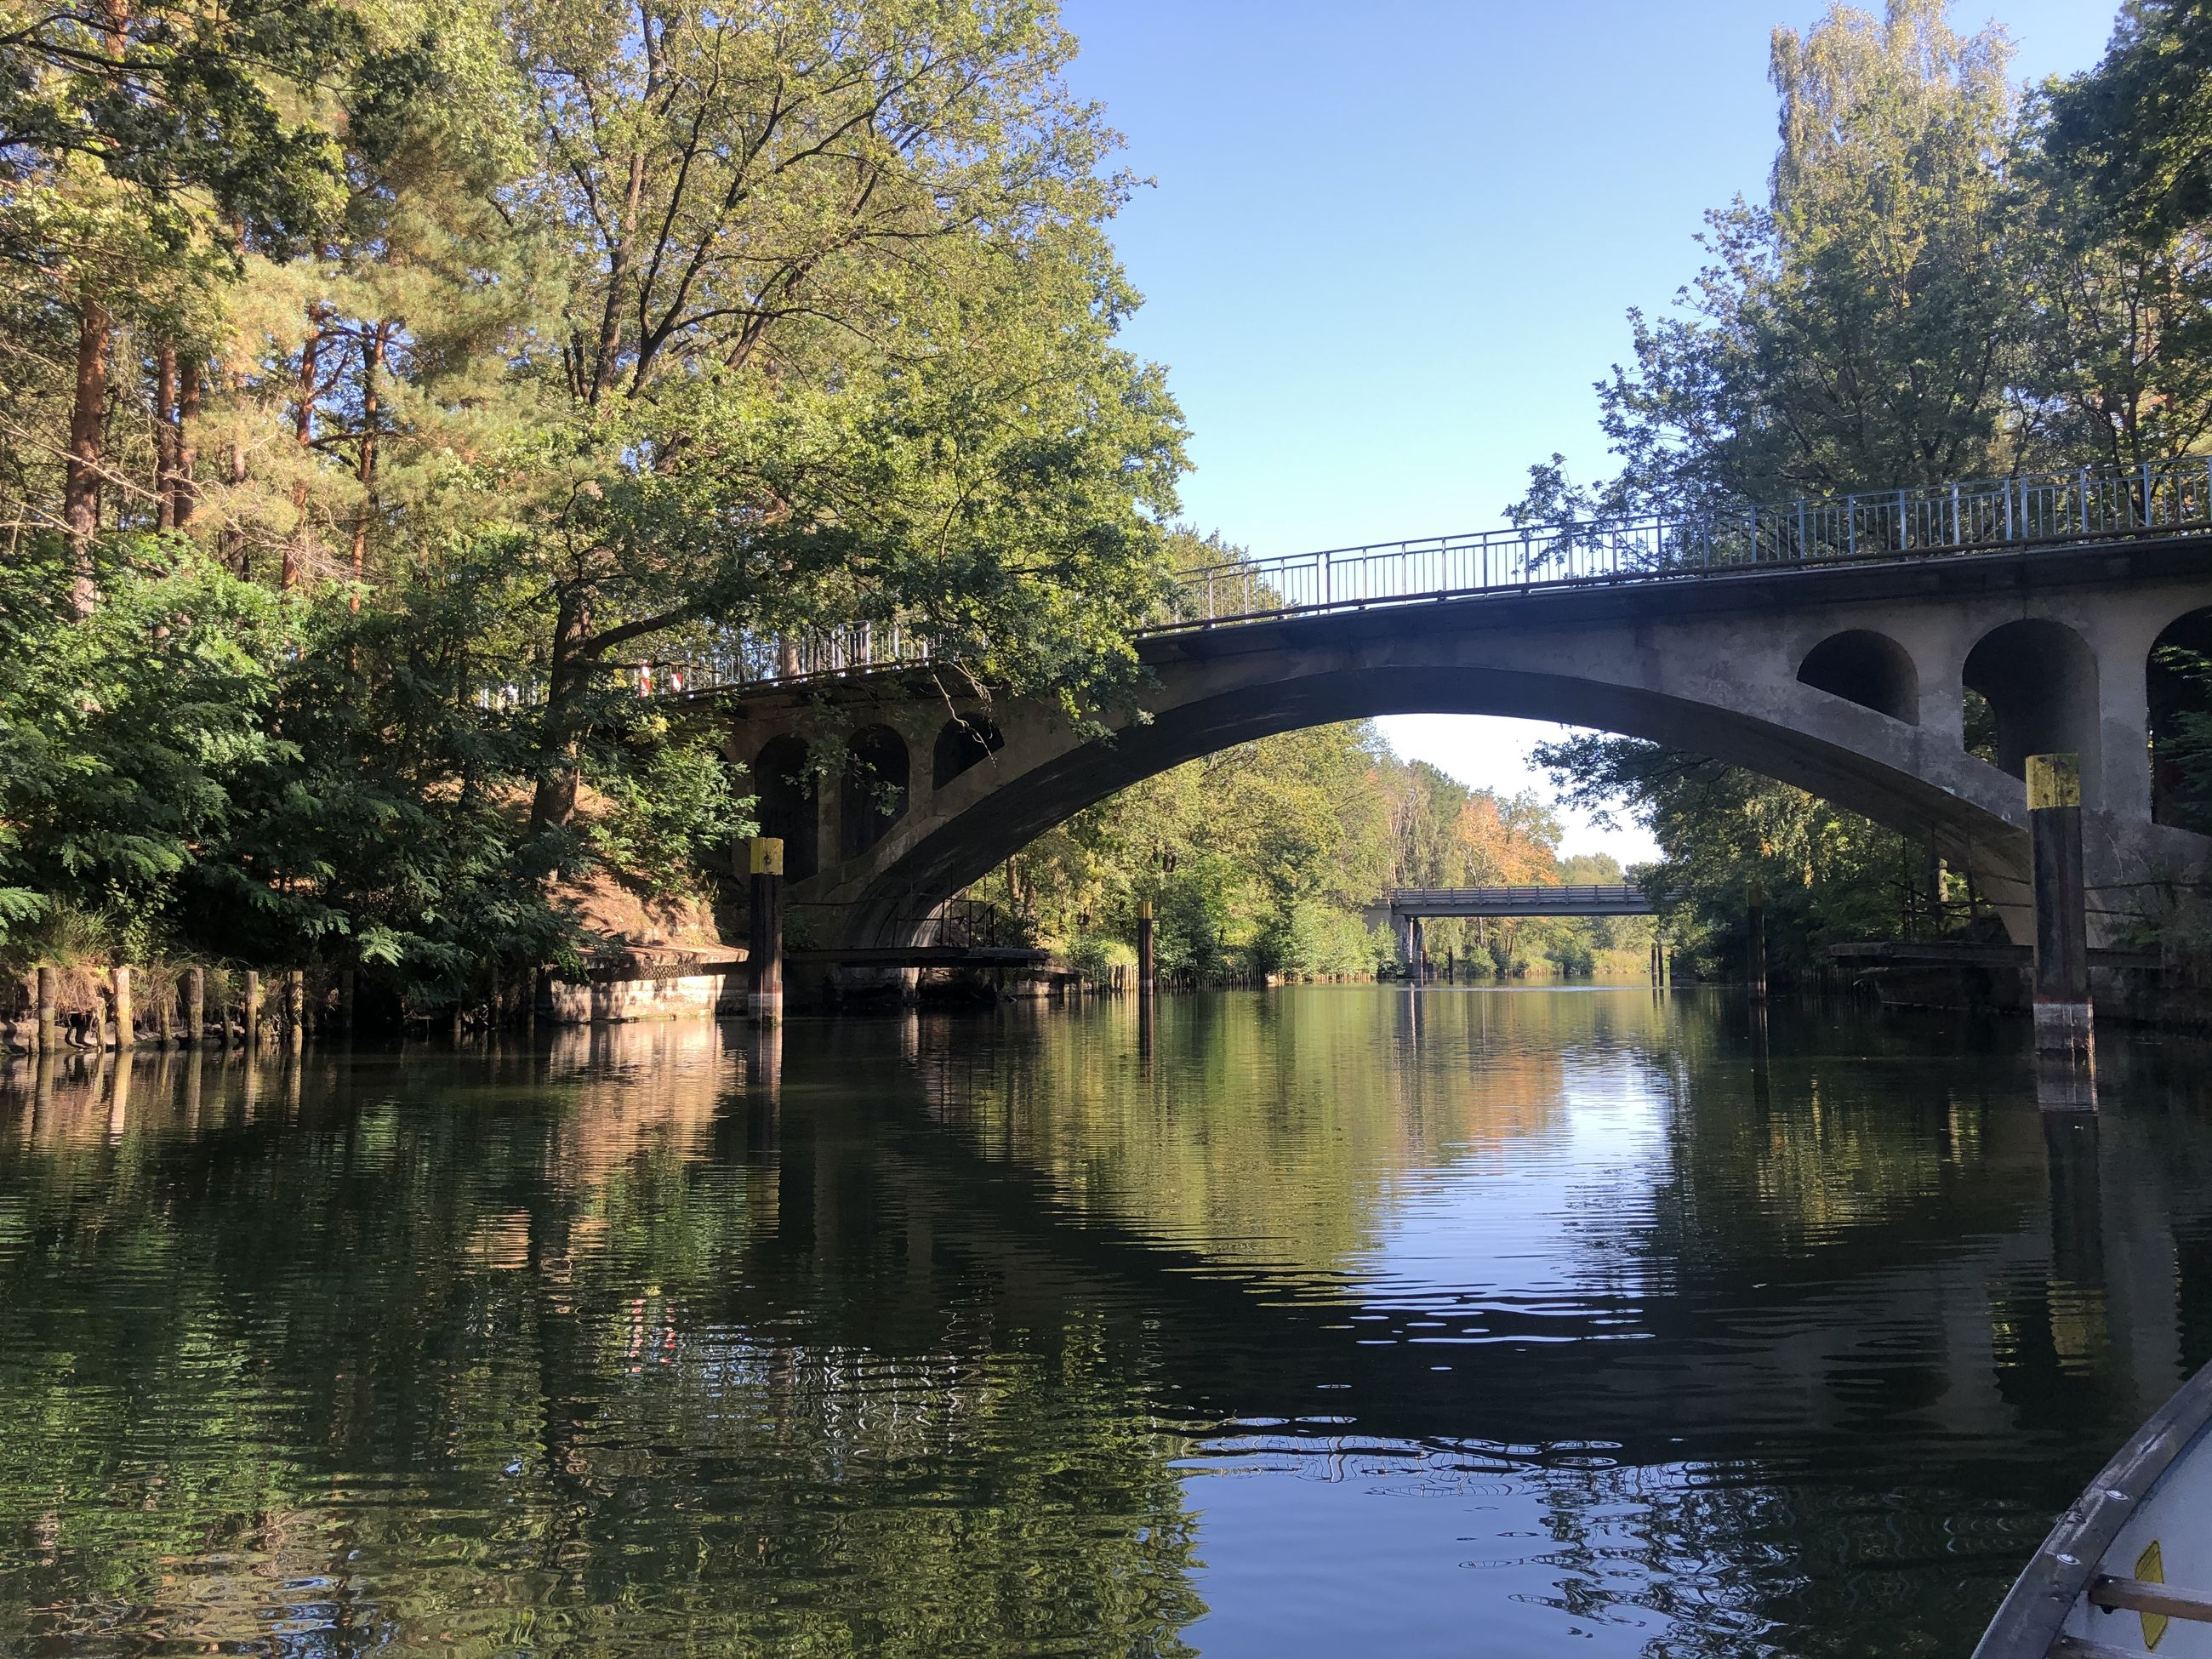 water, bridge, connection, tree, bridge - man made structure, reflection, plant, built structure, architecture, arch, river, transportation, nature, waterfront, day, arch bridge, no people, sky, outdoors